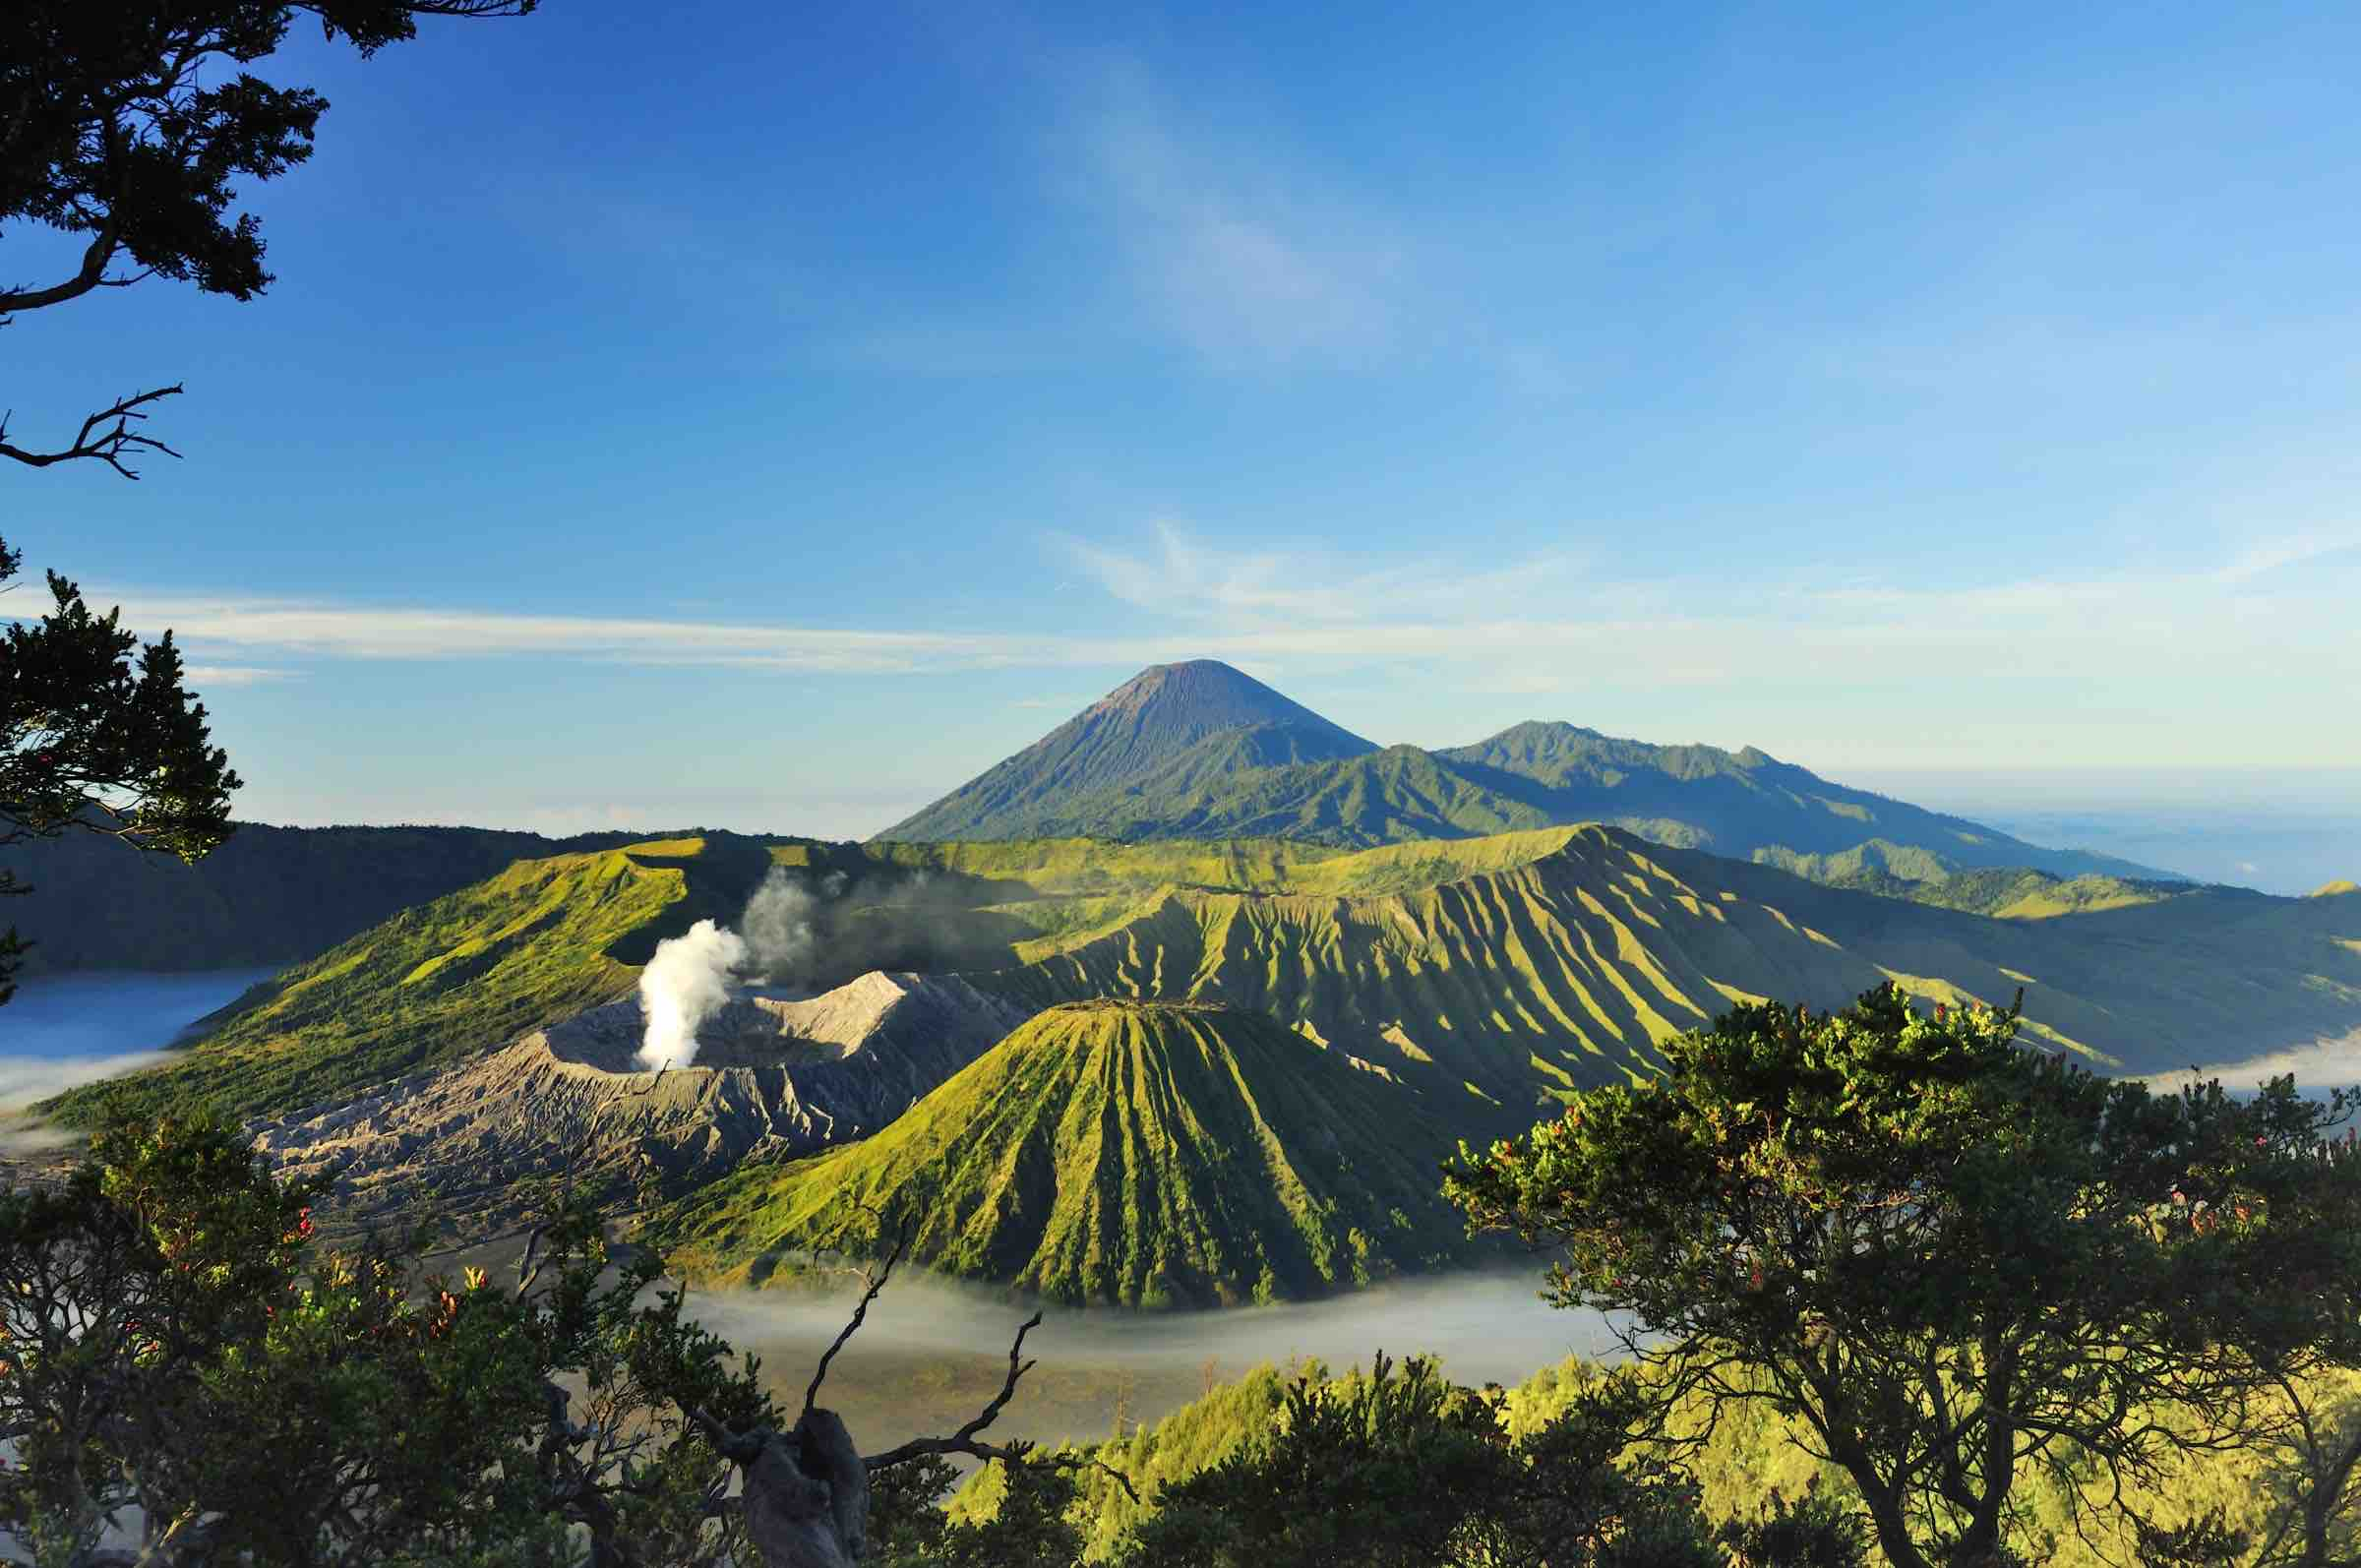 Mount Bromo Indonesia - AspirantSG